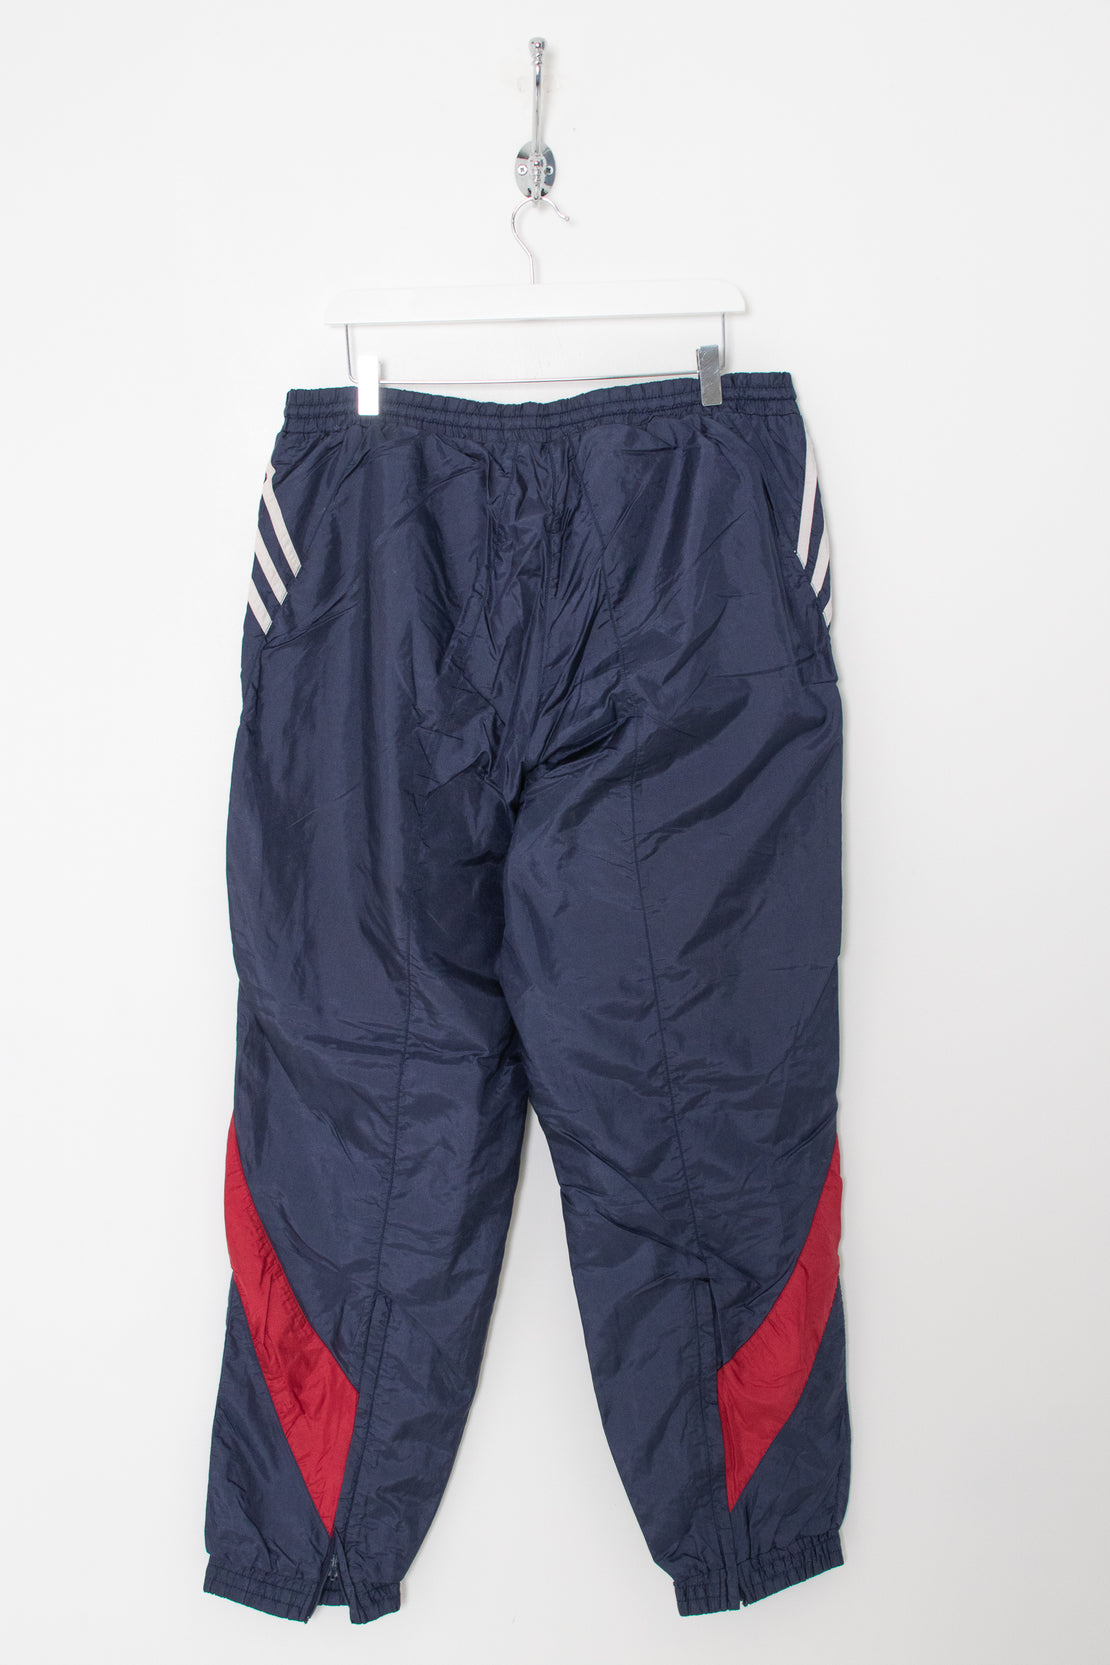 Adidas Shell Suit Bottoms (34)